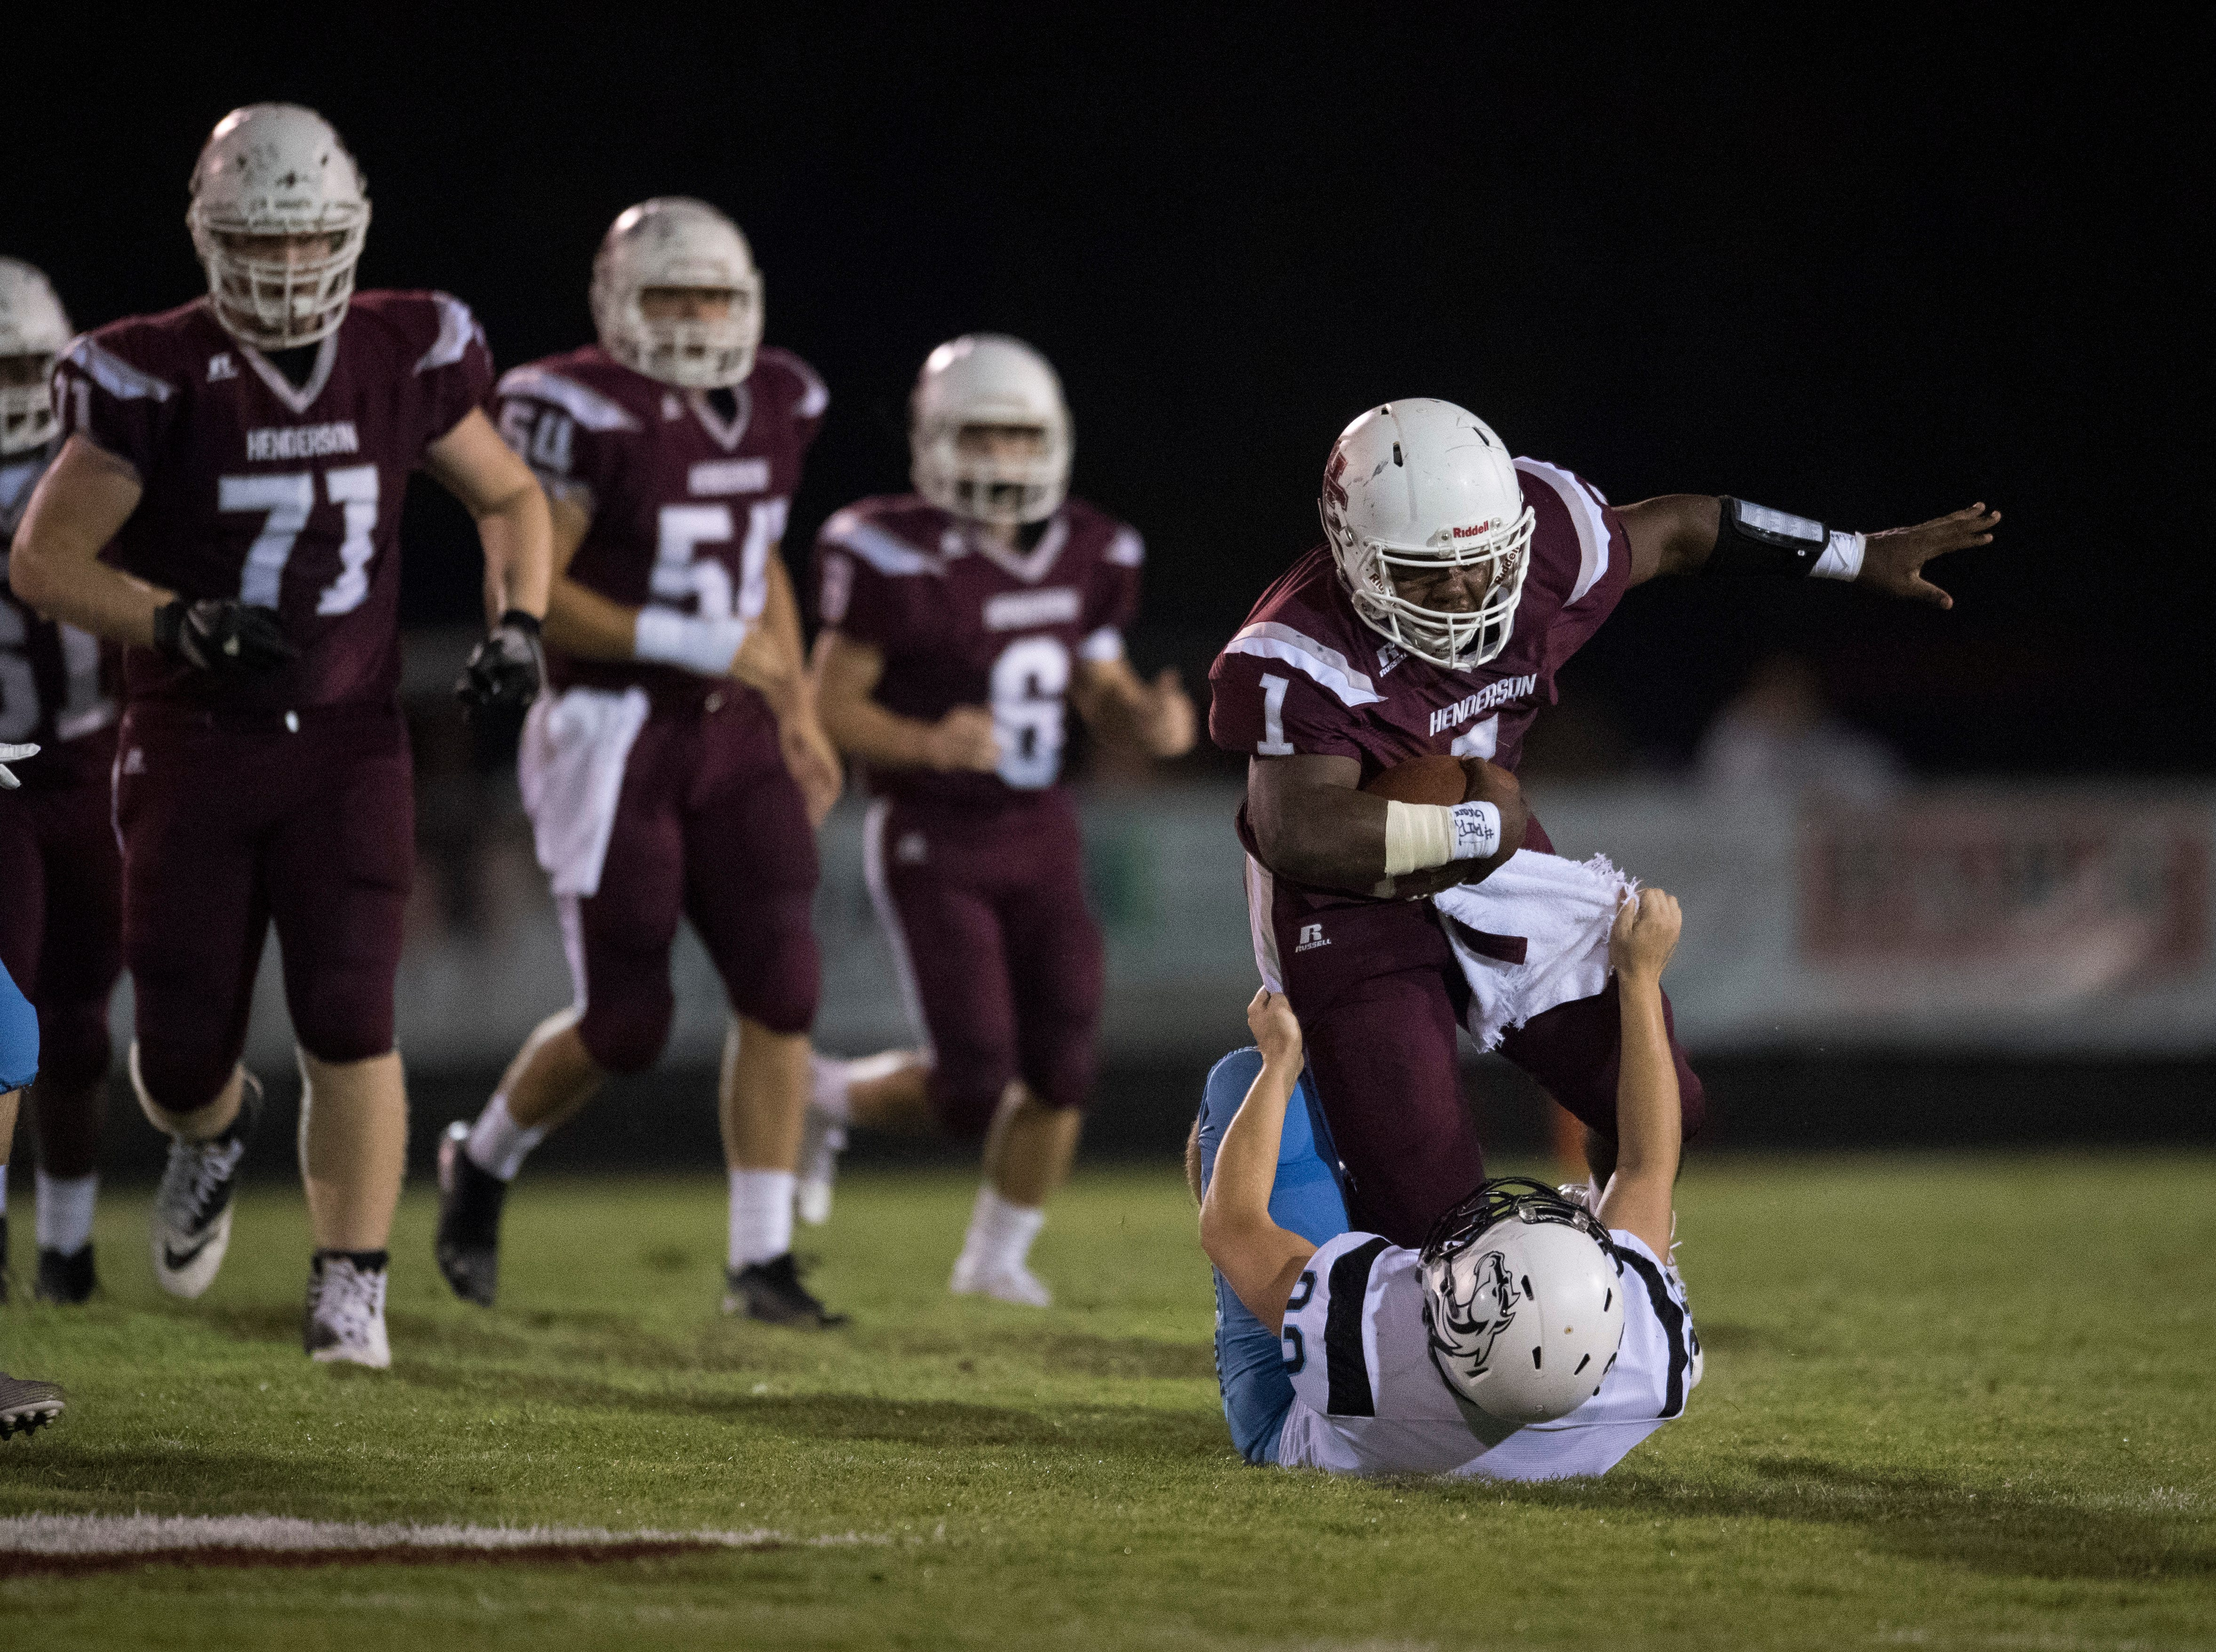 Henderson's Quarterback Skip Patterson (1) runs over Mustang defense during the Henderson vs Muhlenberg County game Friday, Sept. 28, 2018. The Henderson County Colonels won, 61-6.